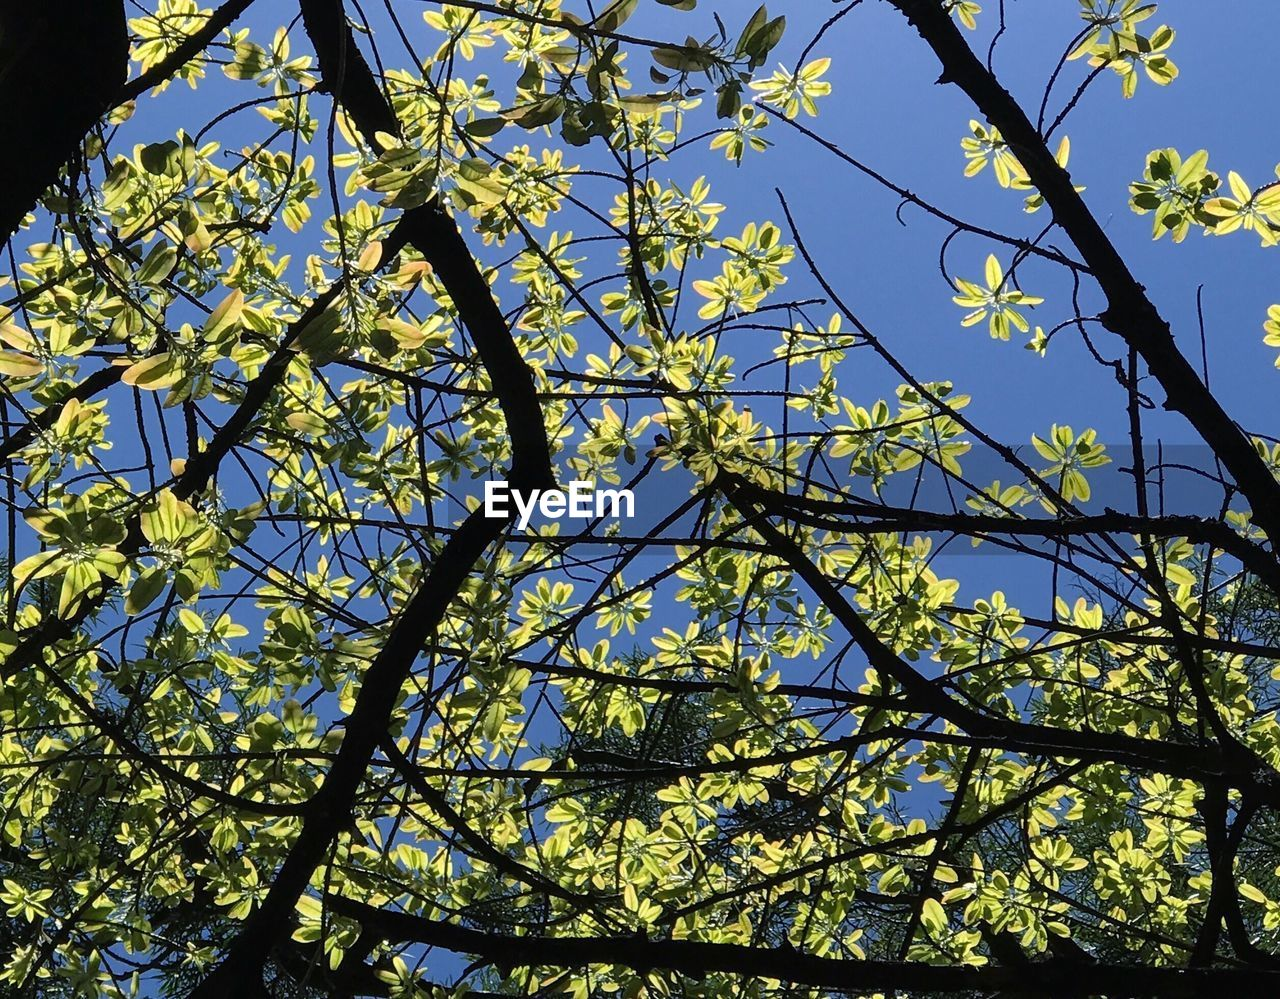 branch, tree, growth, nature, low angle view, flower, day, leaf, beauty in nature, no people, outdoors, fragility, freshness